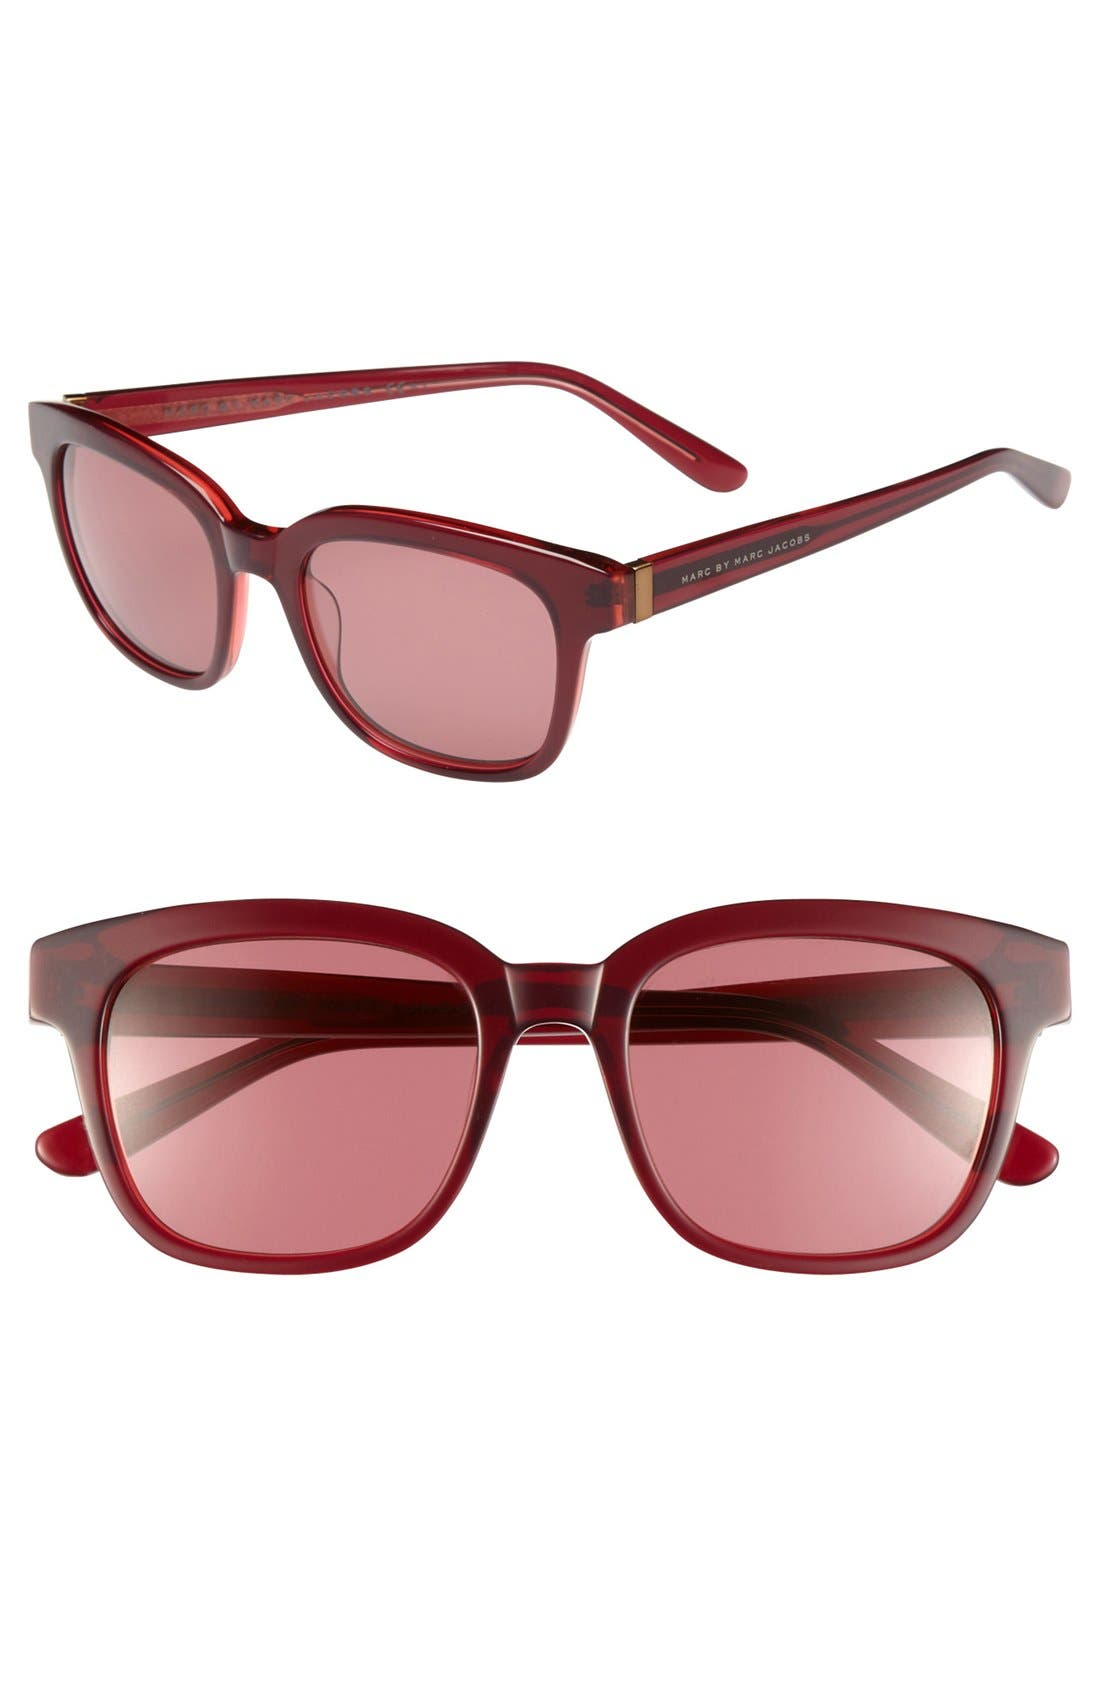 Alternate Image 1 Selected - MARC BY MARC JACOBS 51mm Retro Sunglasses